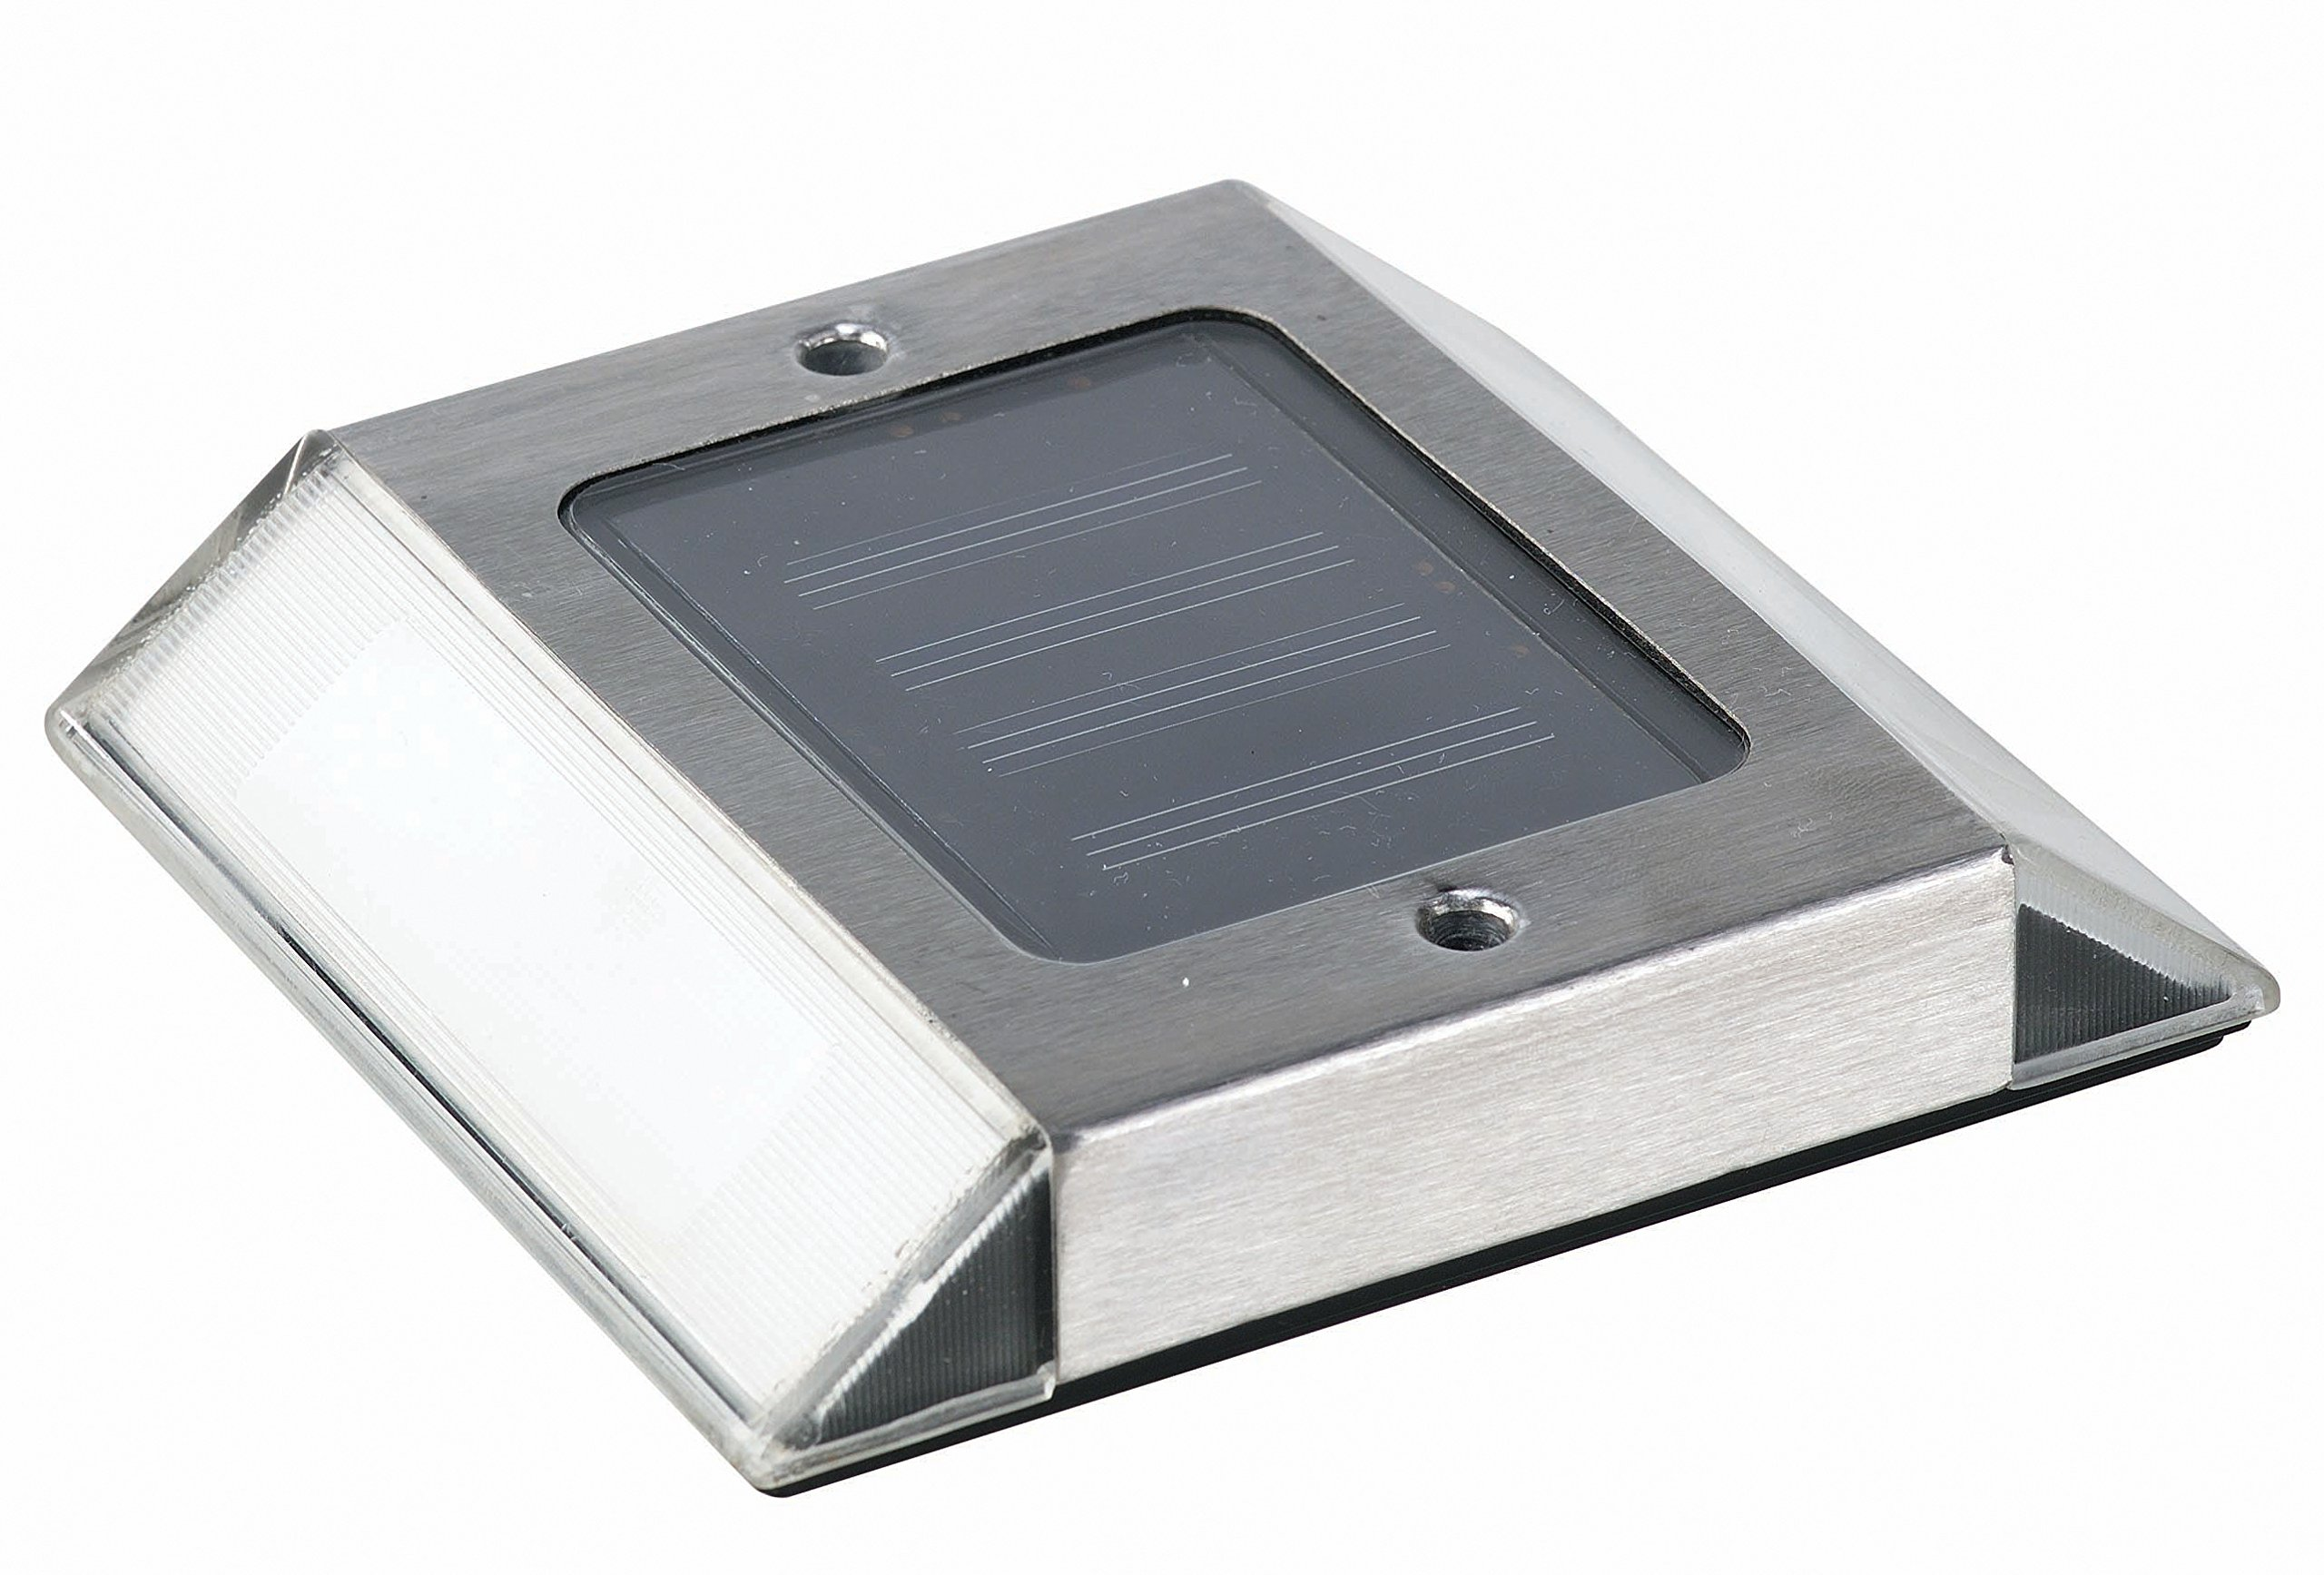 Classy Caps SL499 Stainless Steel Solar Path Light